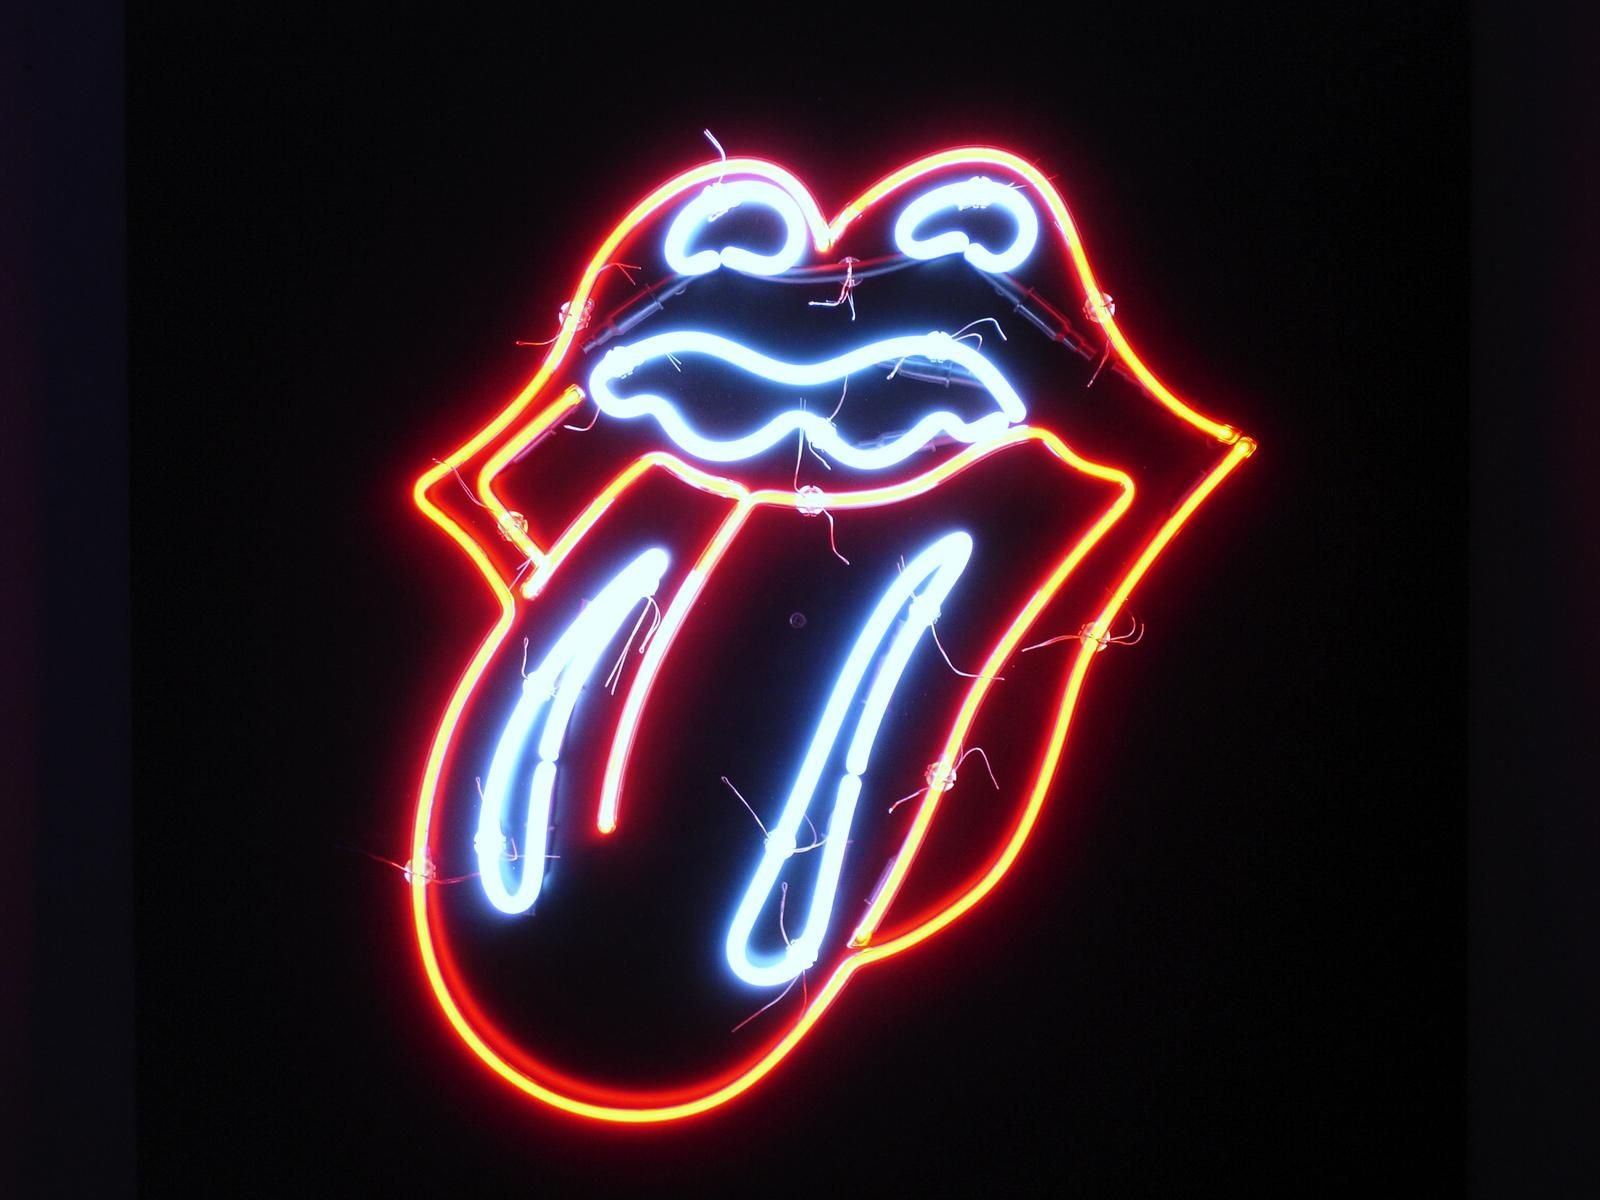 Rolling Stones Tongue Iphone Wallpaper HD Wallpapers 1600x1200 Px 12324 KB